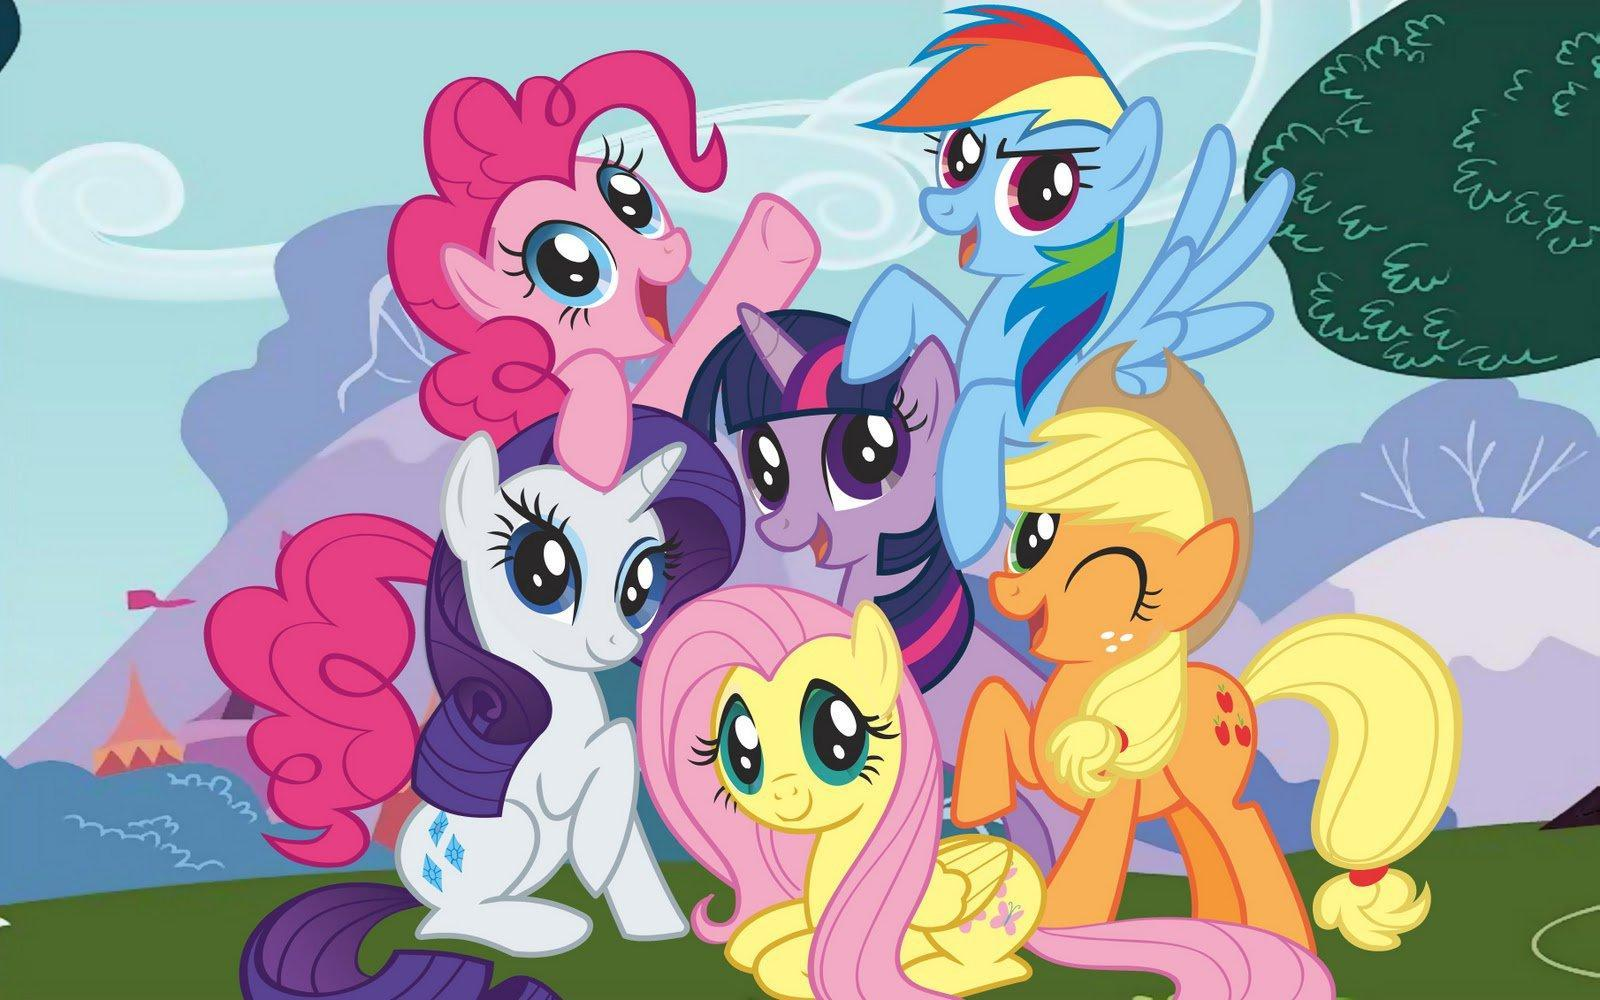 Which one of the characters from My Little Pony are you?